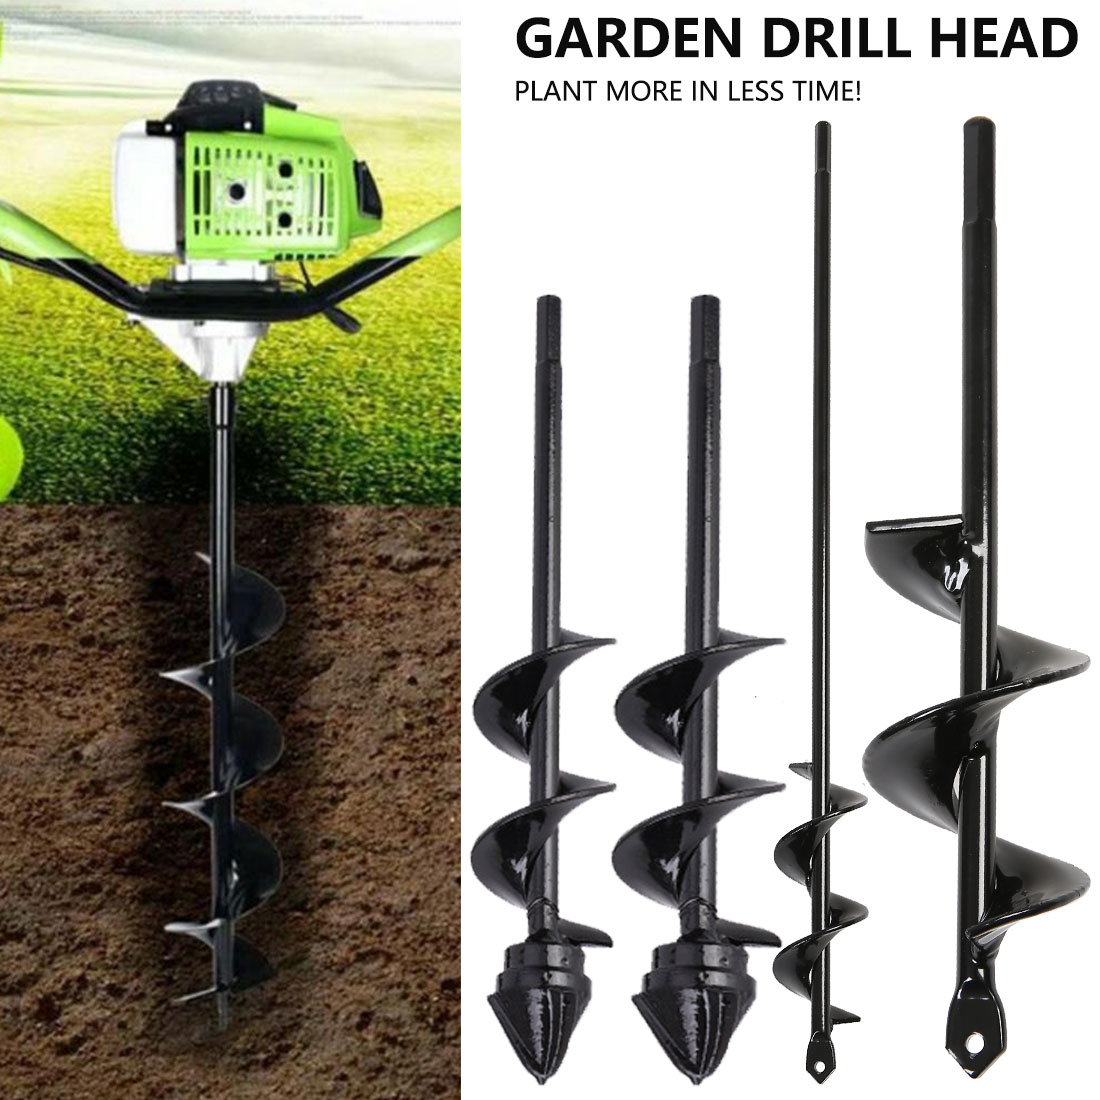 new home yard garden earth land digging holes tool drill bit farm planting auger digging spiral bit for electric cordless drill Auger Drill Bit for Planting Drill Auger Yard Gardening Bedding Planting Hole Digger Tool Replacement Garden Tool Earth Drill